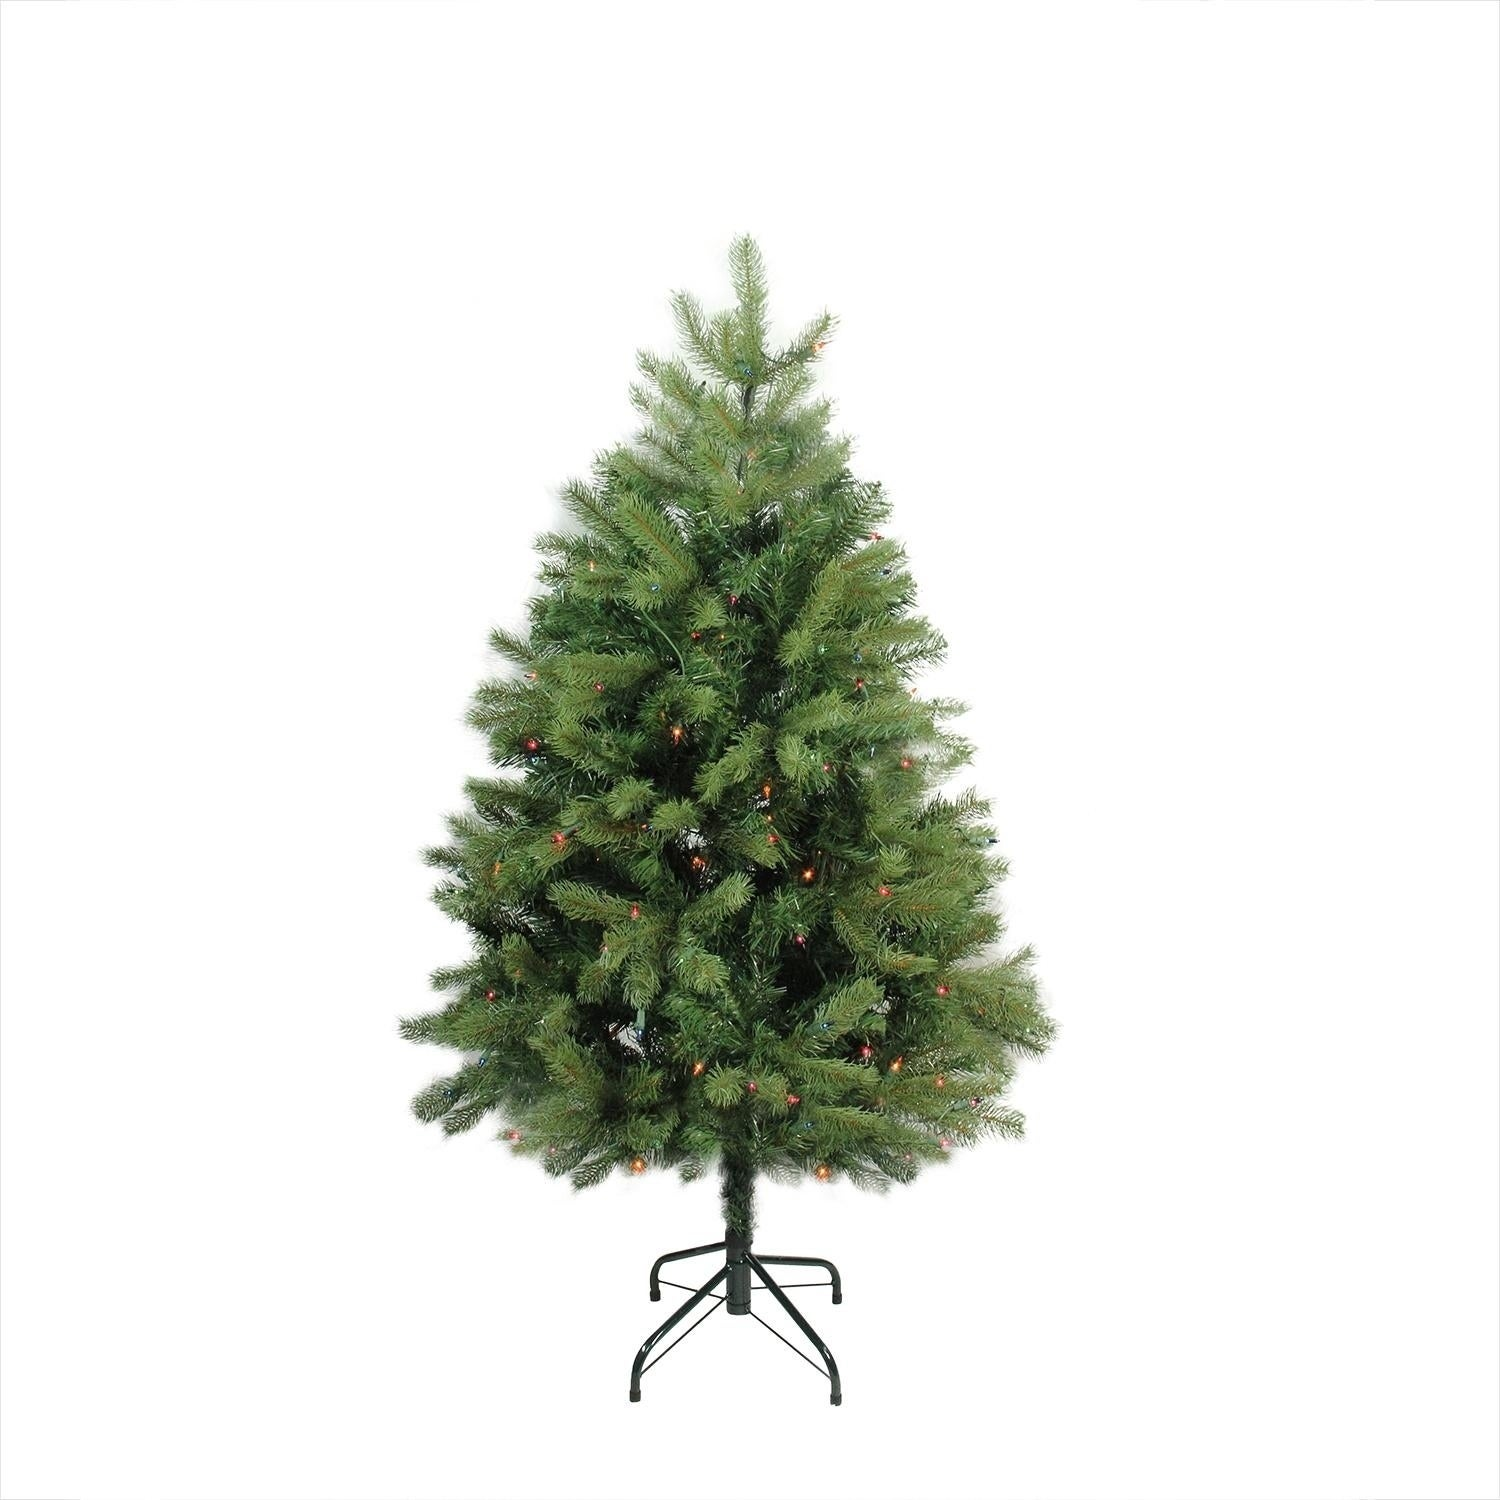 Most Realistic Artificial Christmas Tree.4 Pre Lit Noble Fir Full Artificial Christmas Tree Multi Color Lights